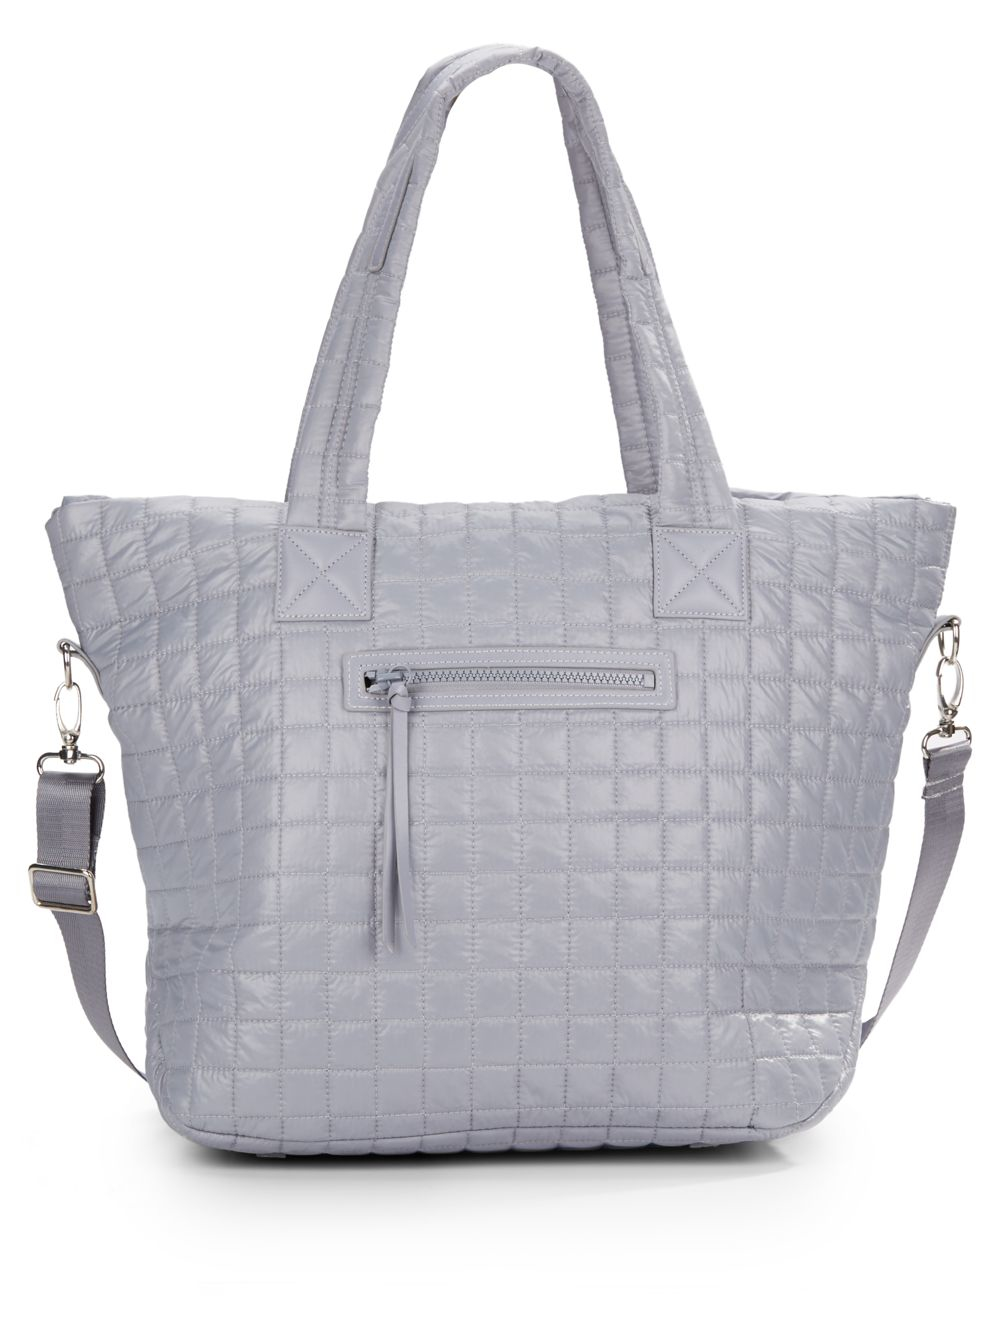 13359f006657 Prada Quilted Tote Bag At Saks   Stanford Center for Opportunity ...